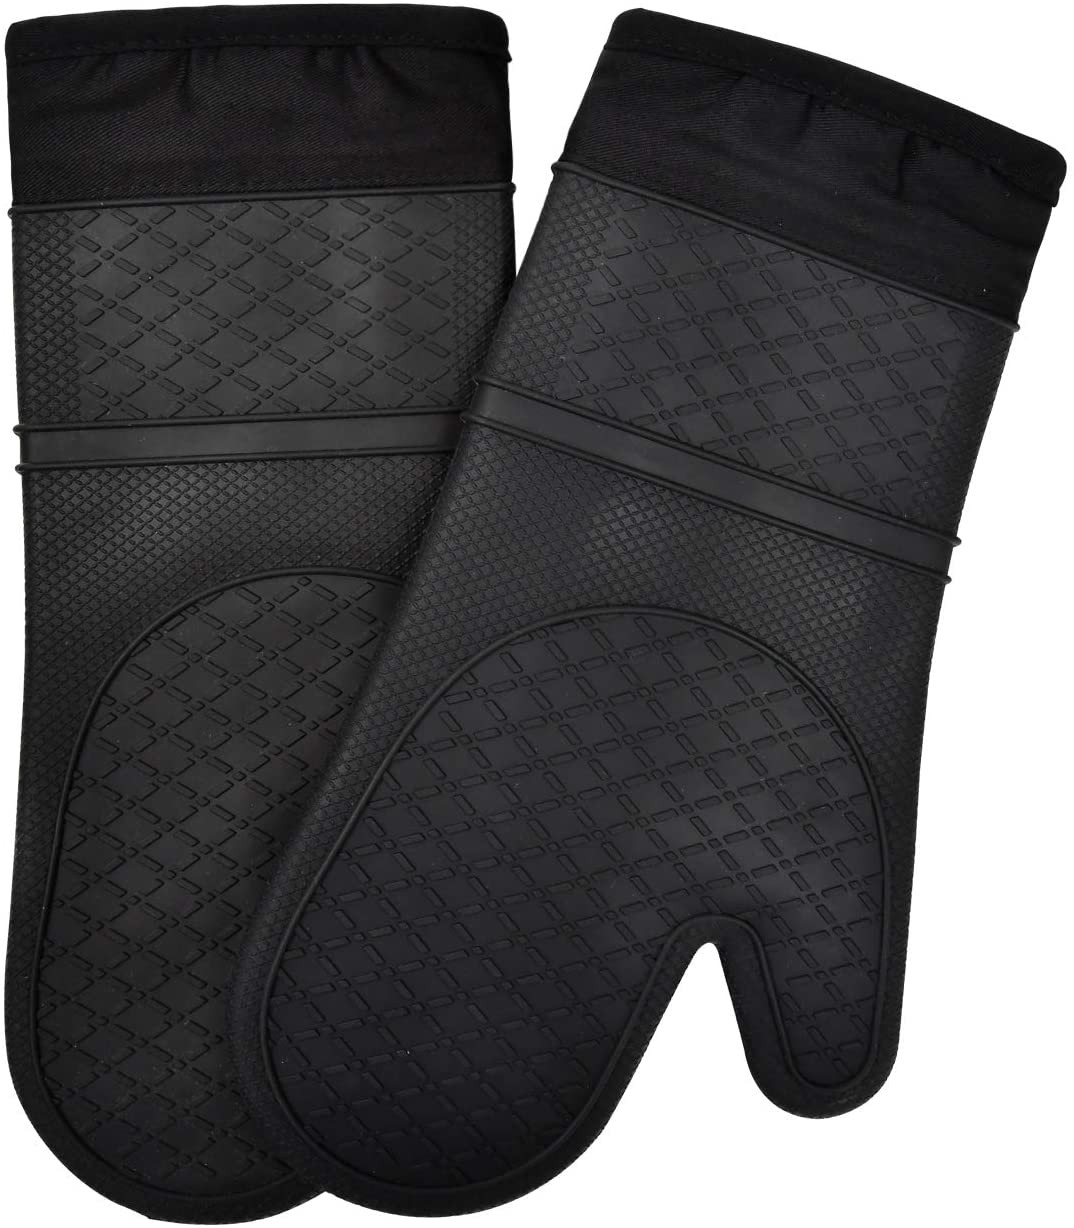 Techsea Long Professional Silicone Oven Mitts, Heat Resistatance Waterproof Oven Mitts with Quilted Liner for Cooking Baking BBQ, 1 Pair (Black)